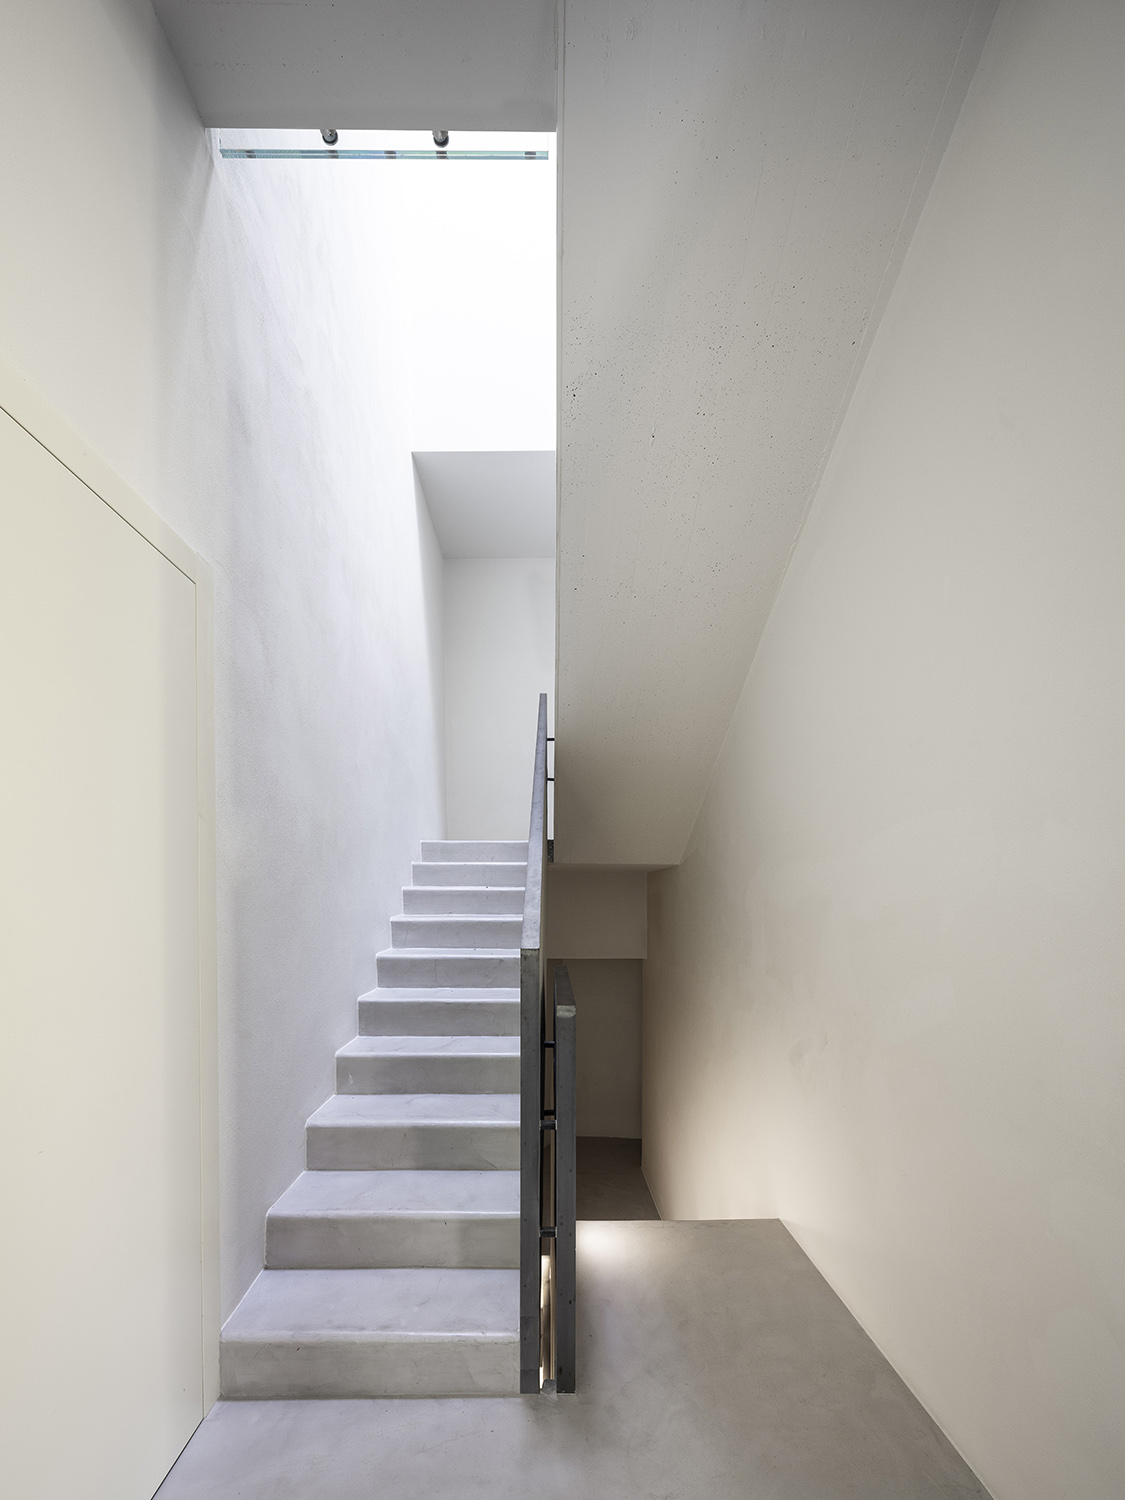 Concrete Stairs - Structural Box Filippo Poli Photography